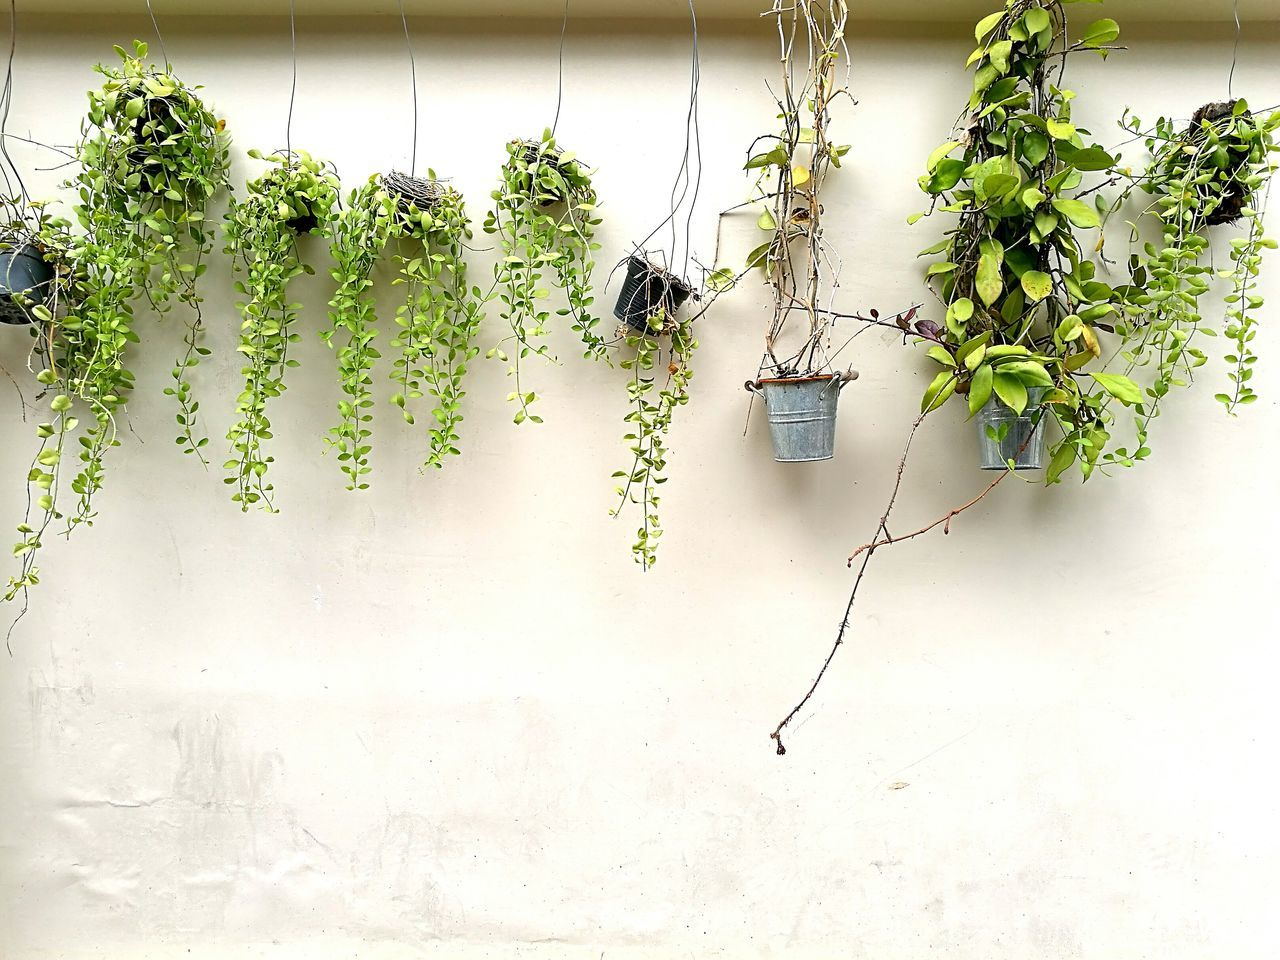 Nature Go Green Plants Plants On The Wall Growth Outdoors Best EyeEm Shot Enjoying Life